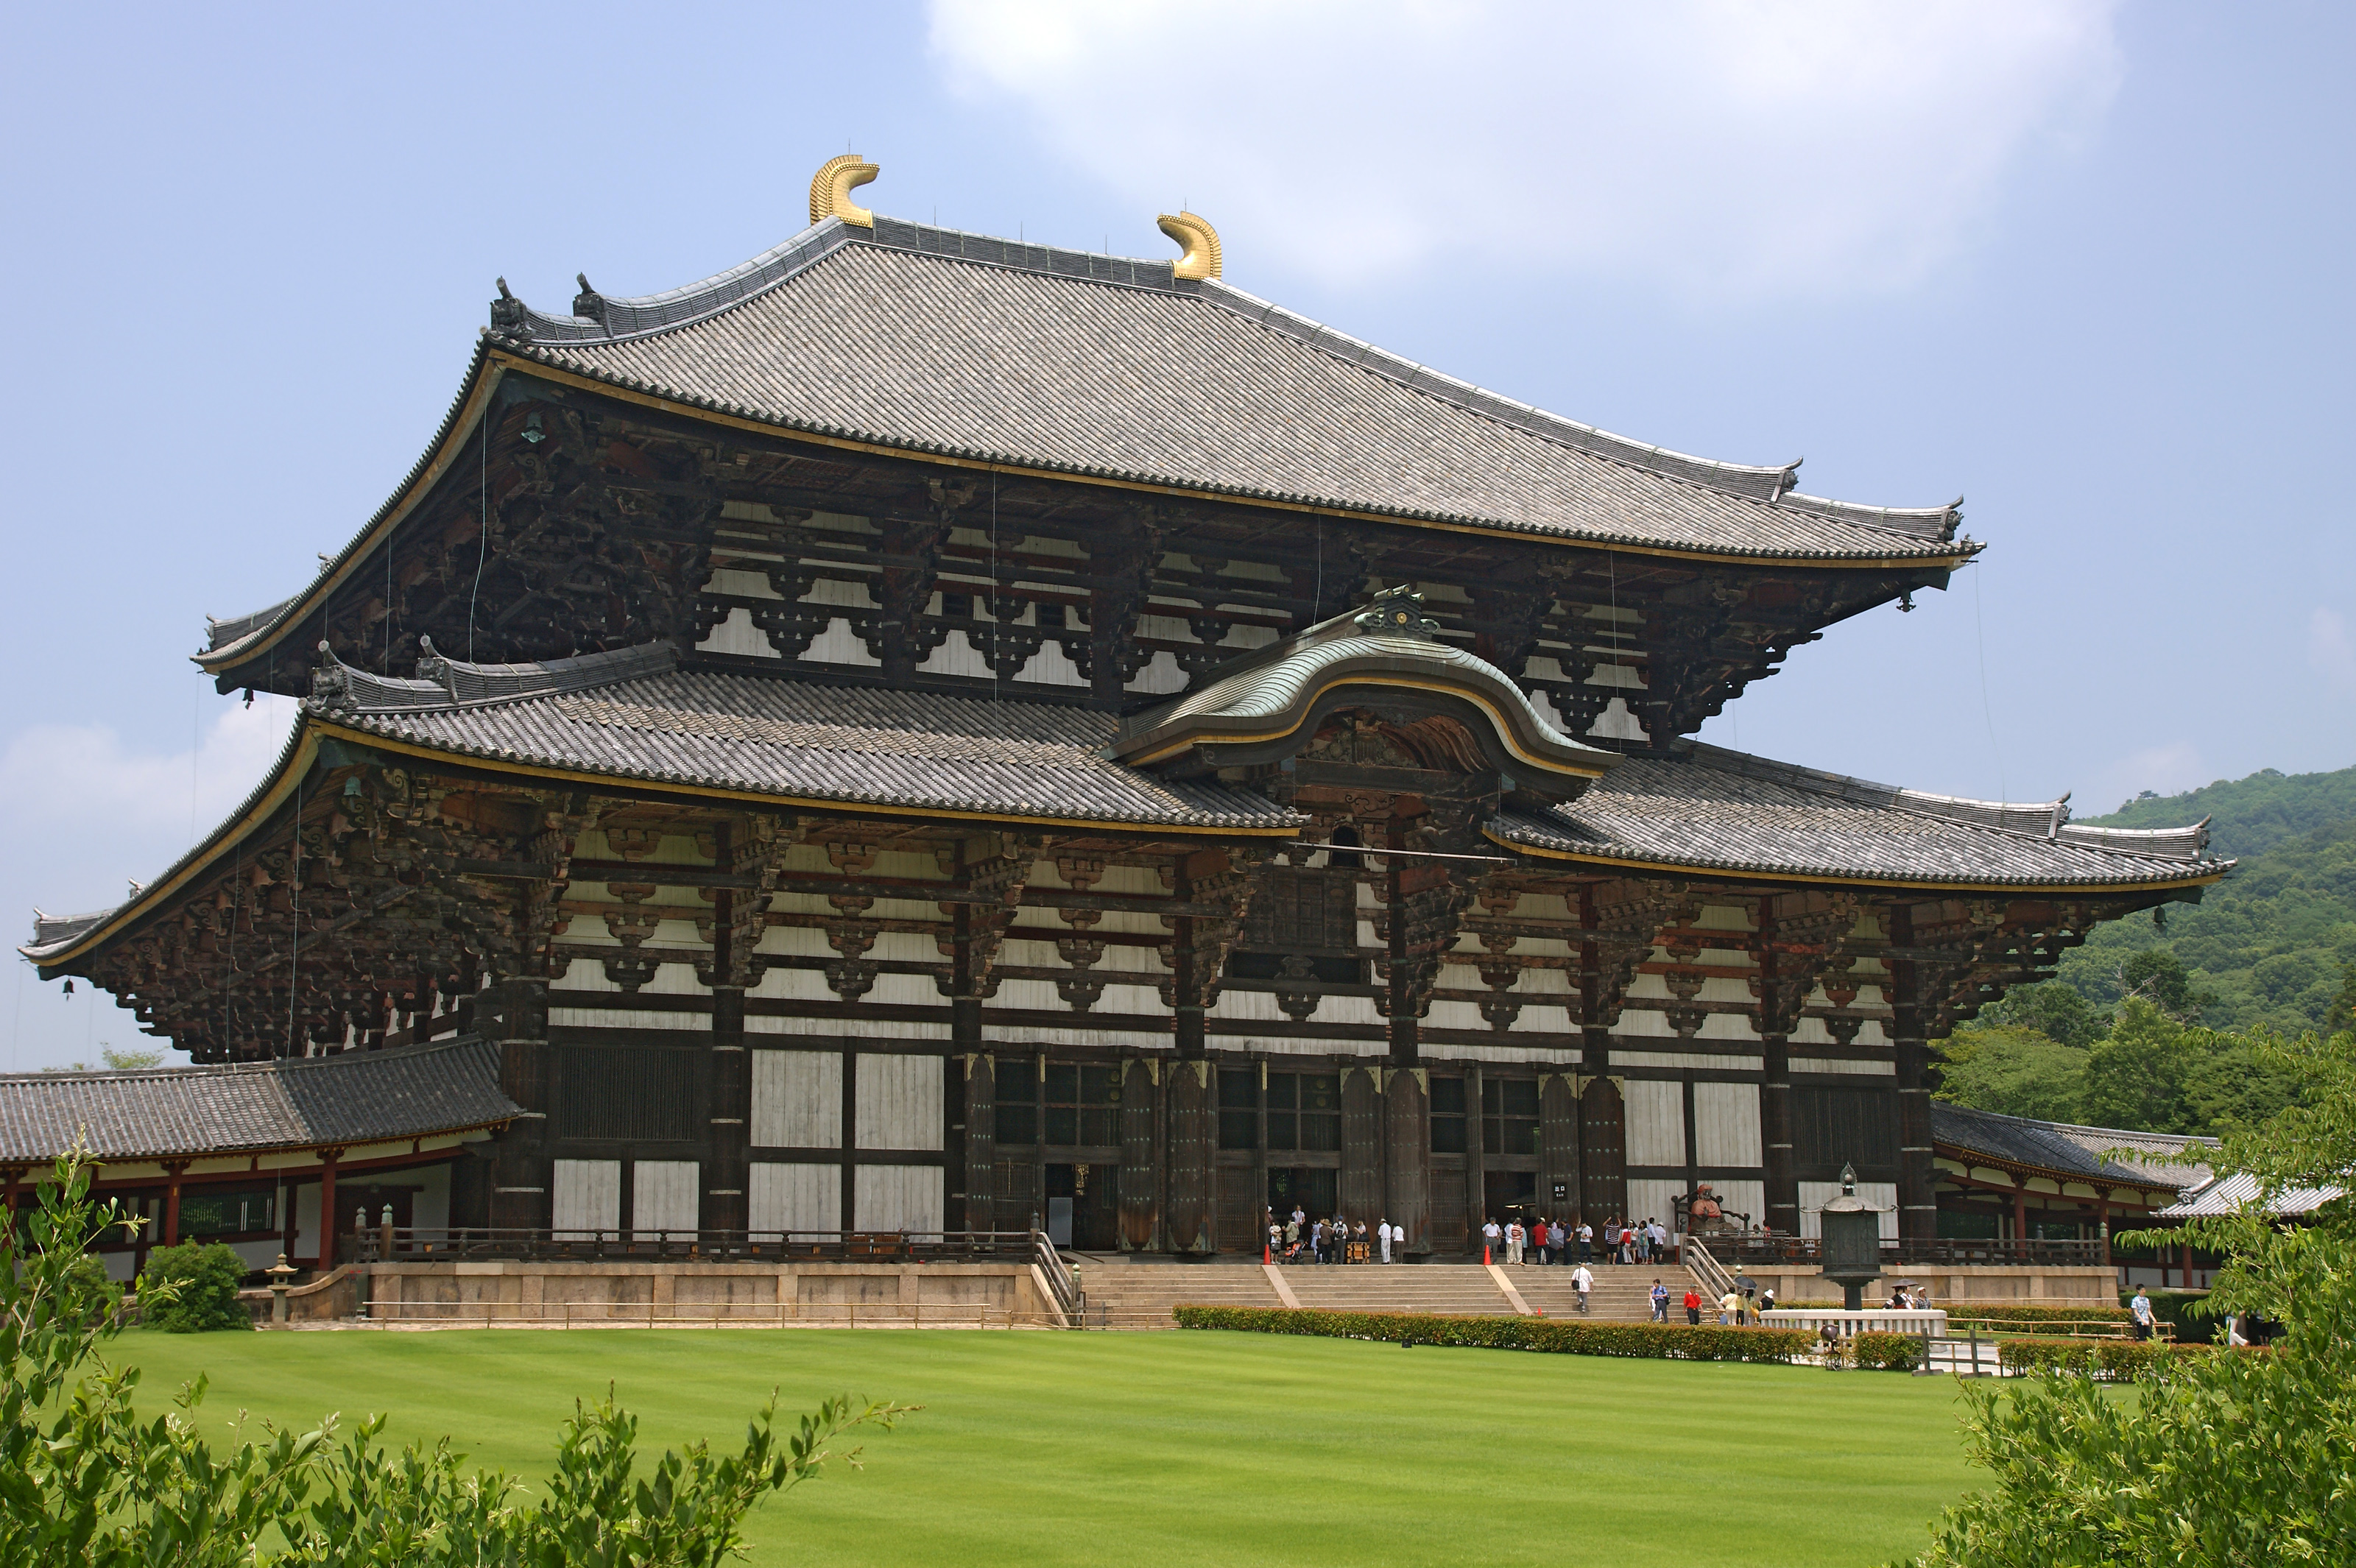 http://upload.wikimedia.org/wikipedia/commons/b/b5/Daibutsu-den_in_Todaiji_Nara01bs3200.jpg